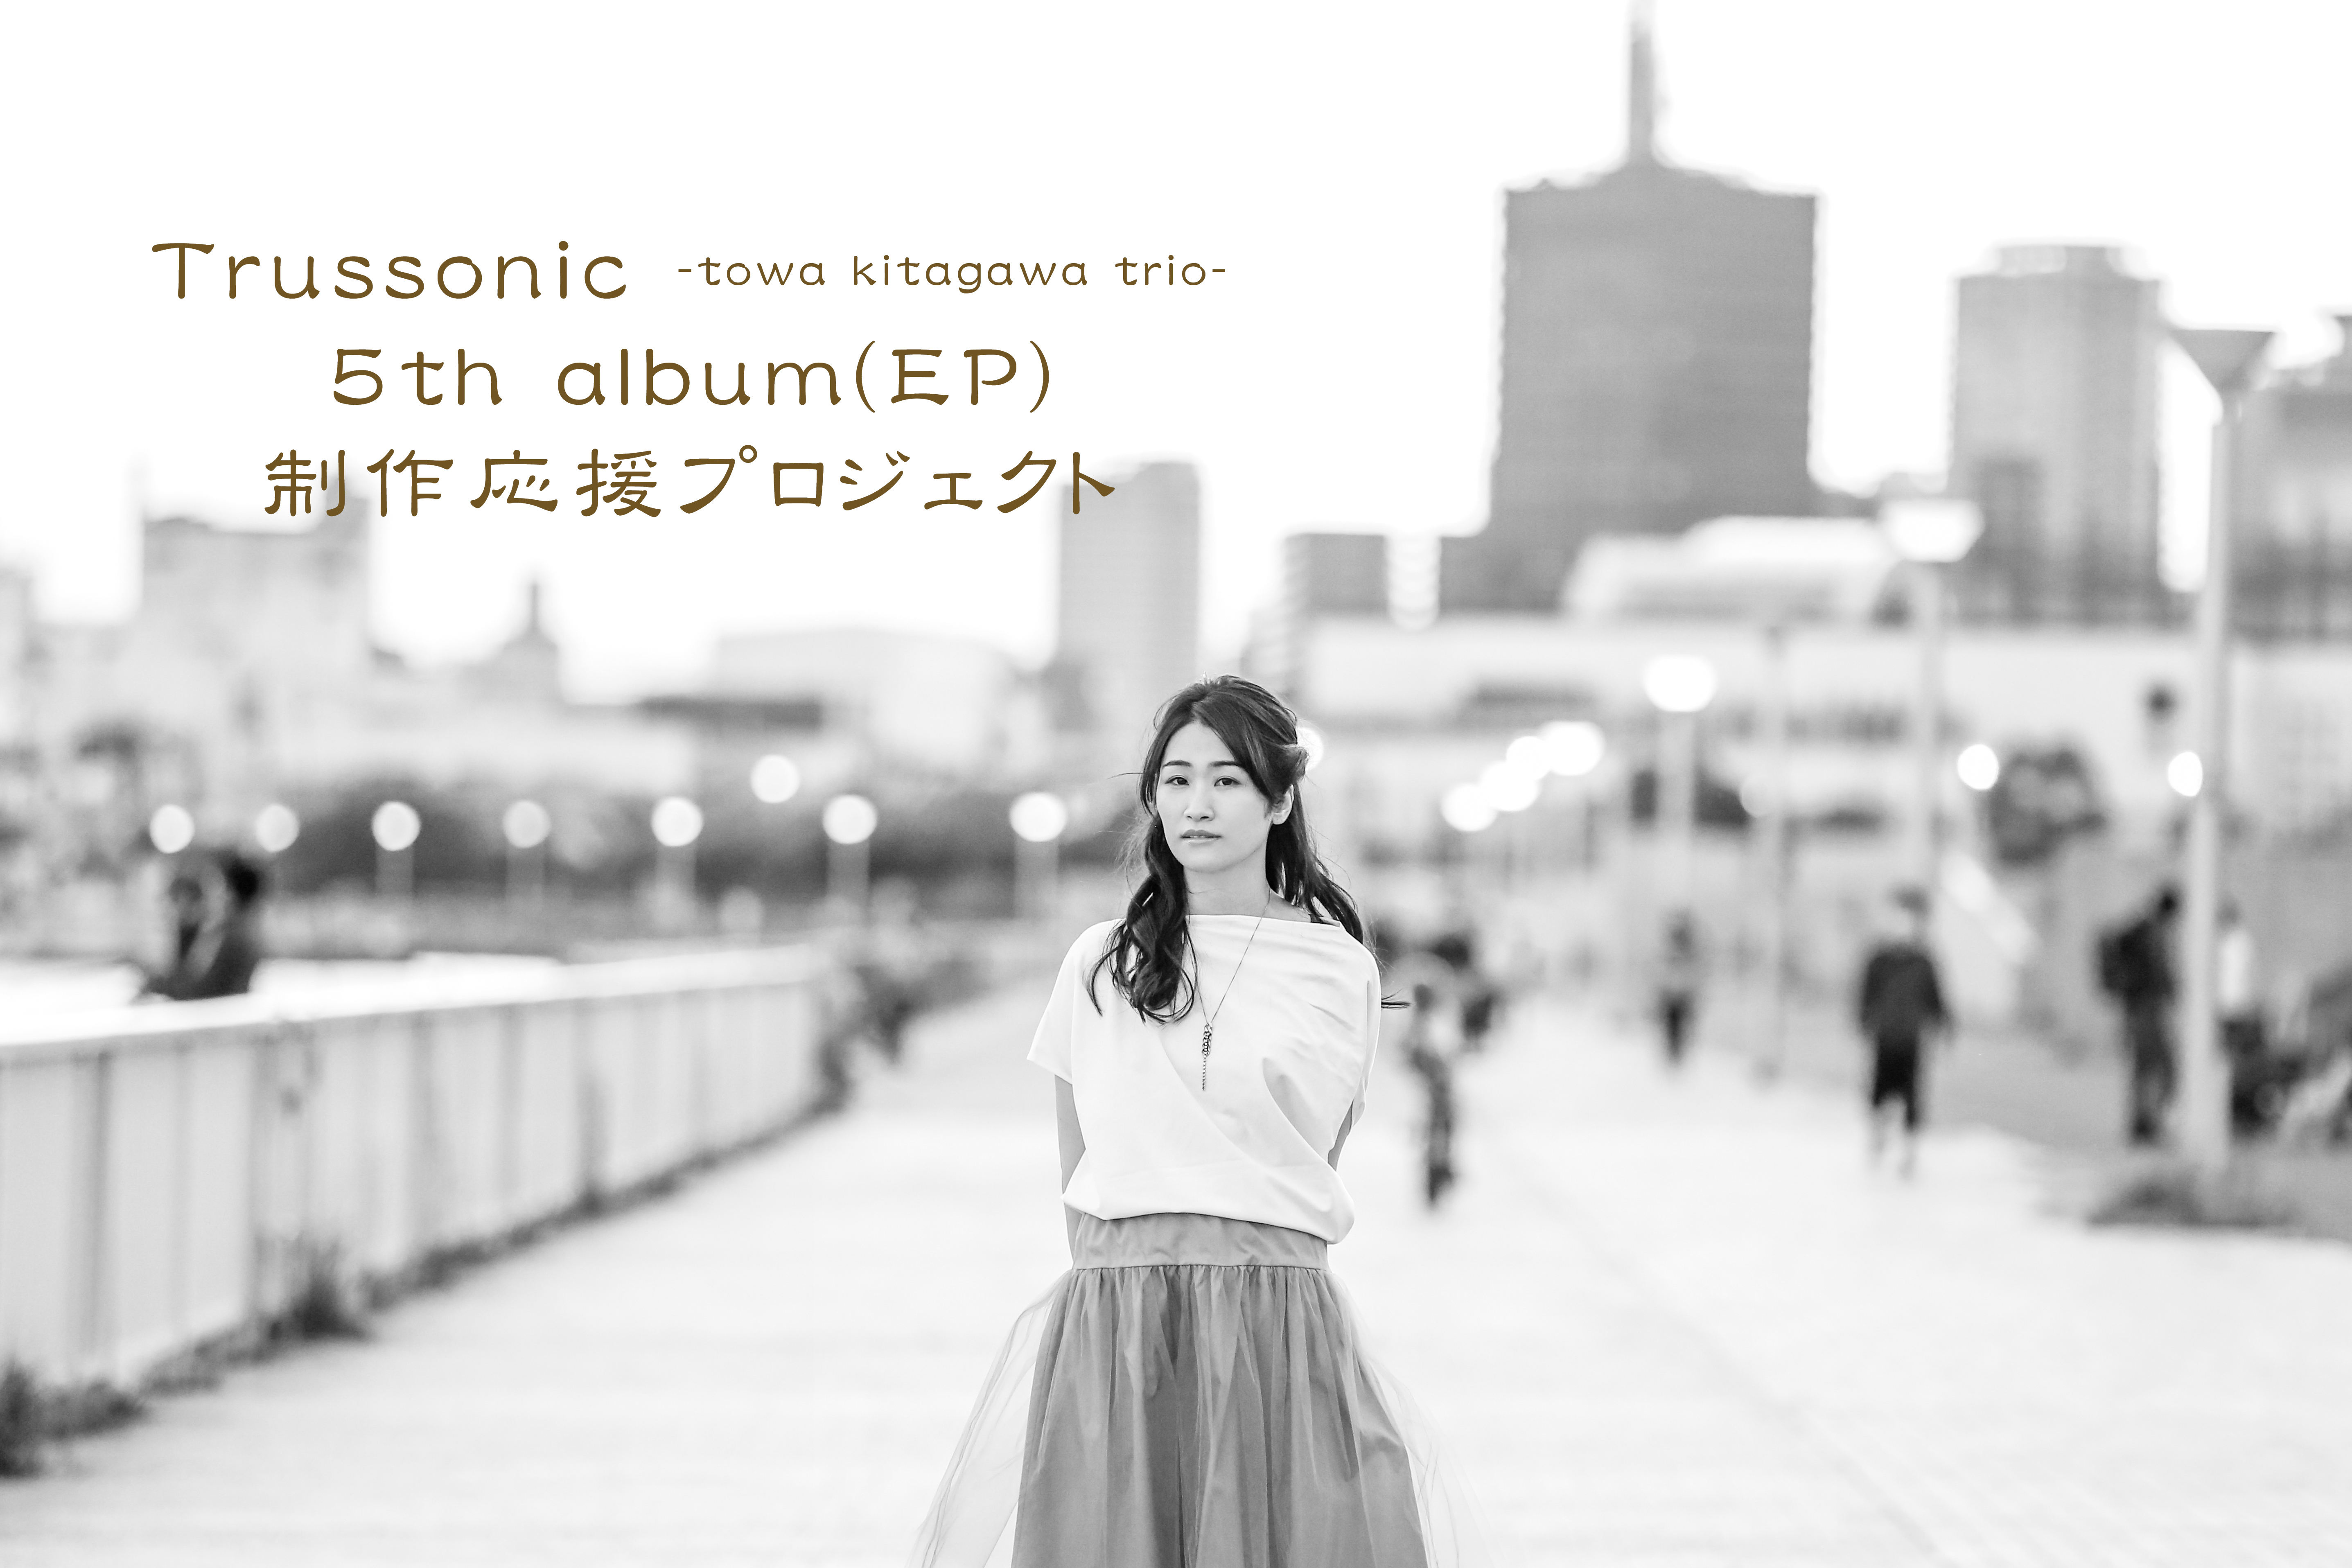 Trussonic -towa kitagawa trio- 5th album(EP) 制作応援プロジェクト